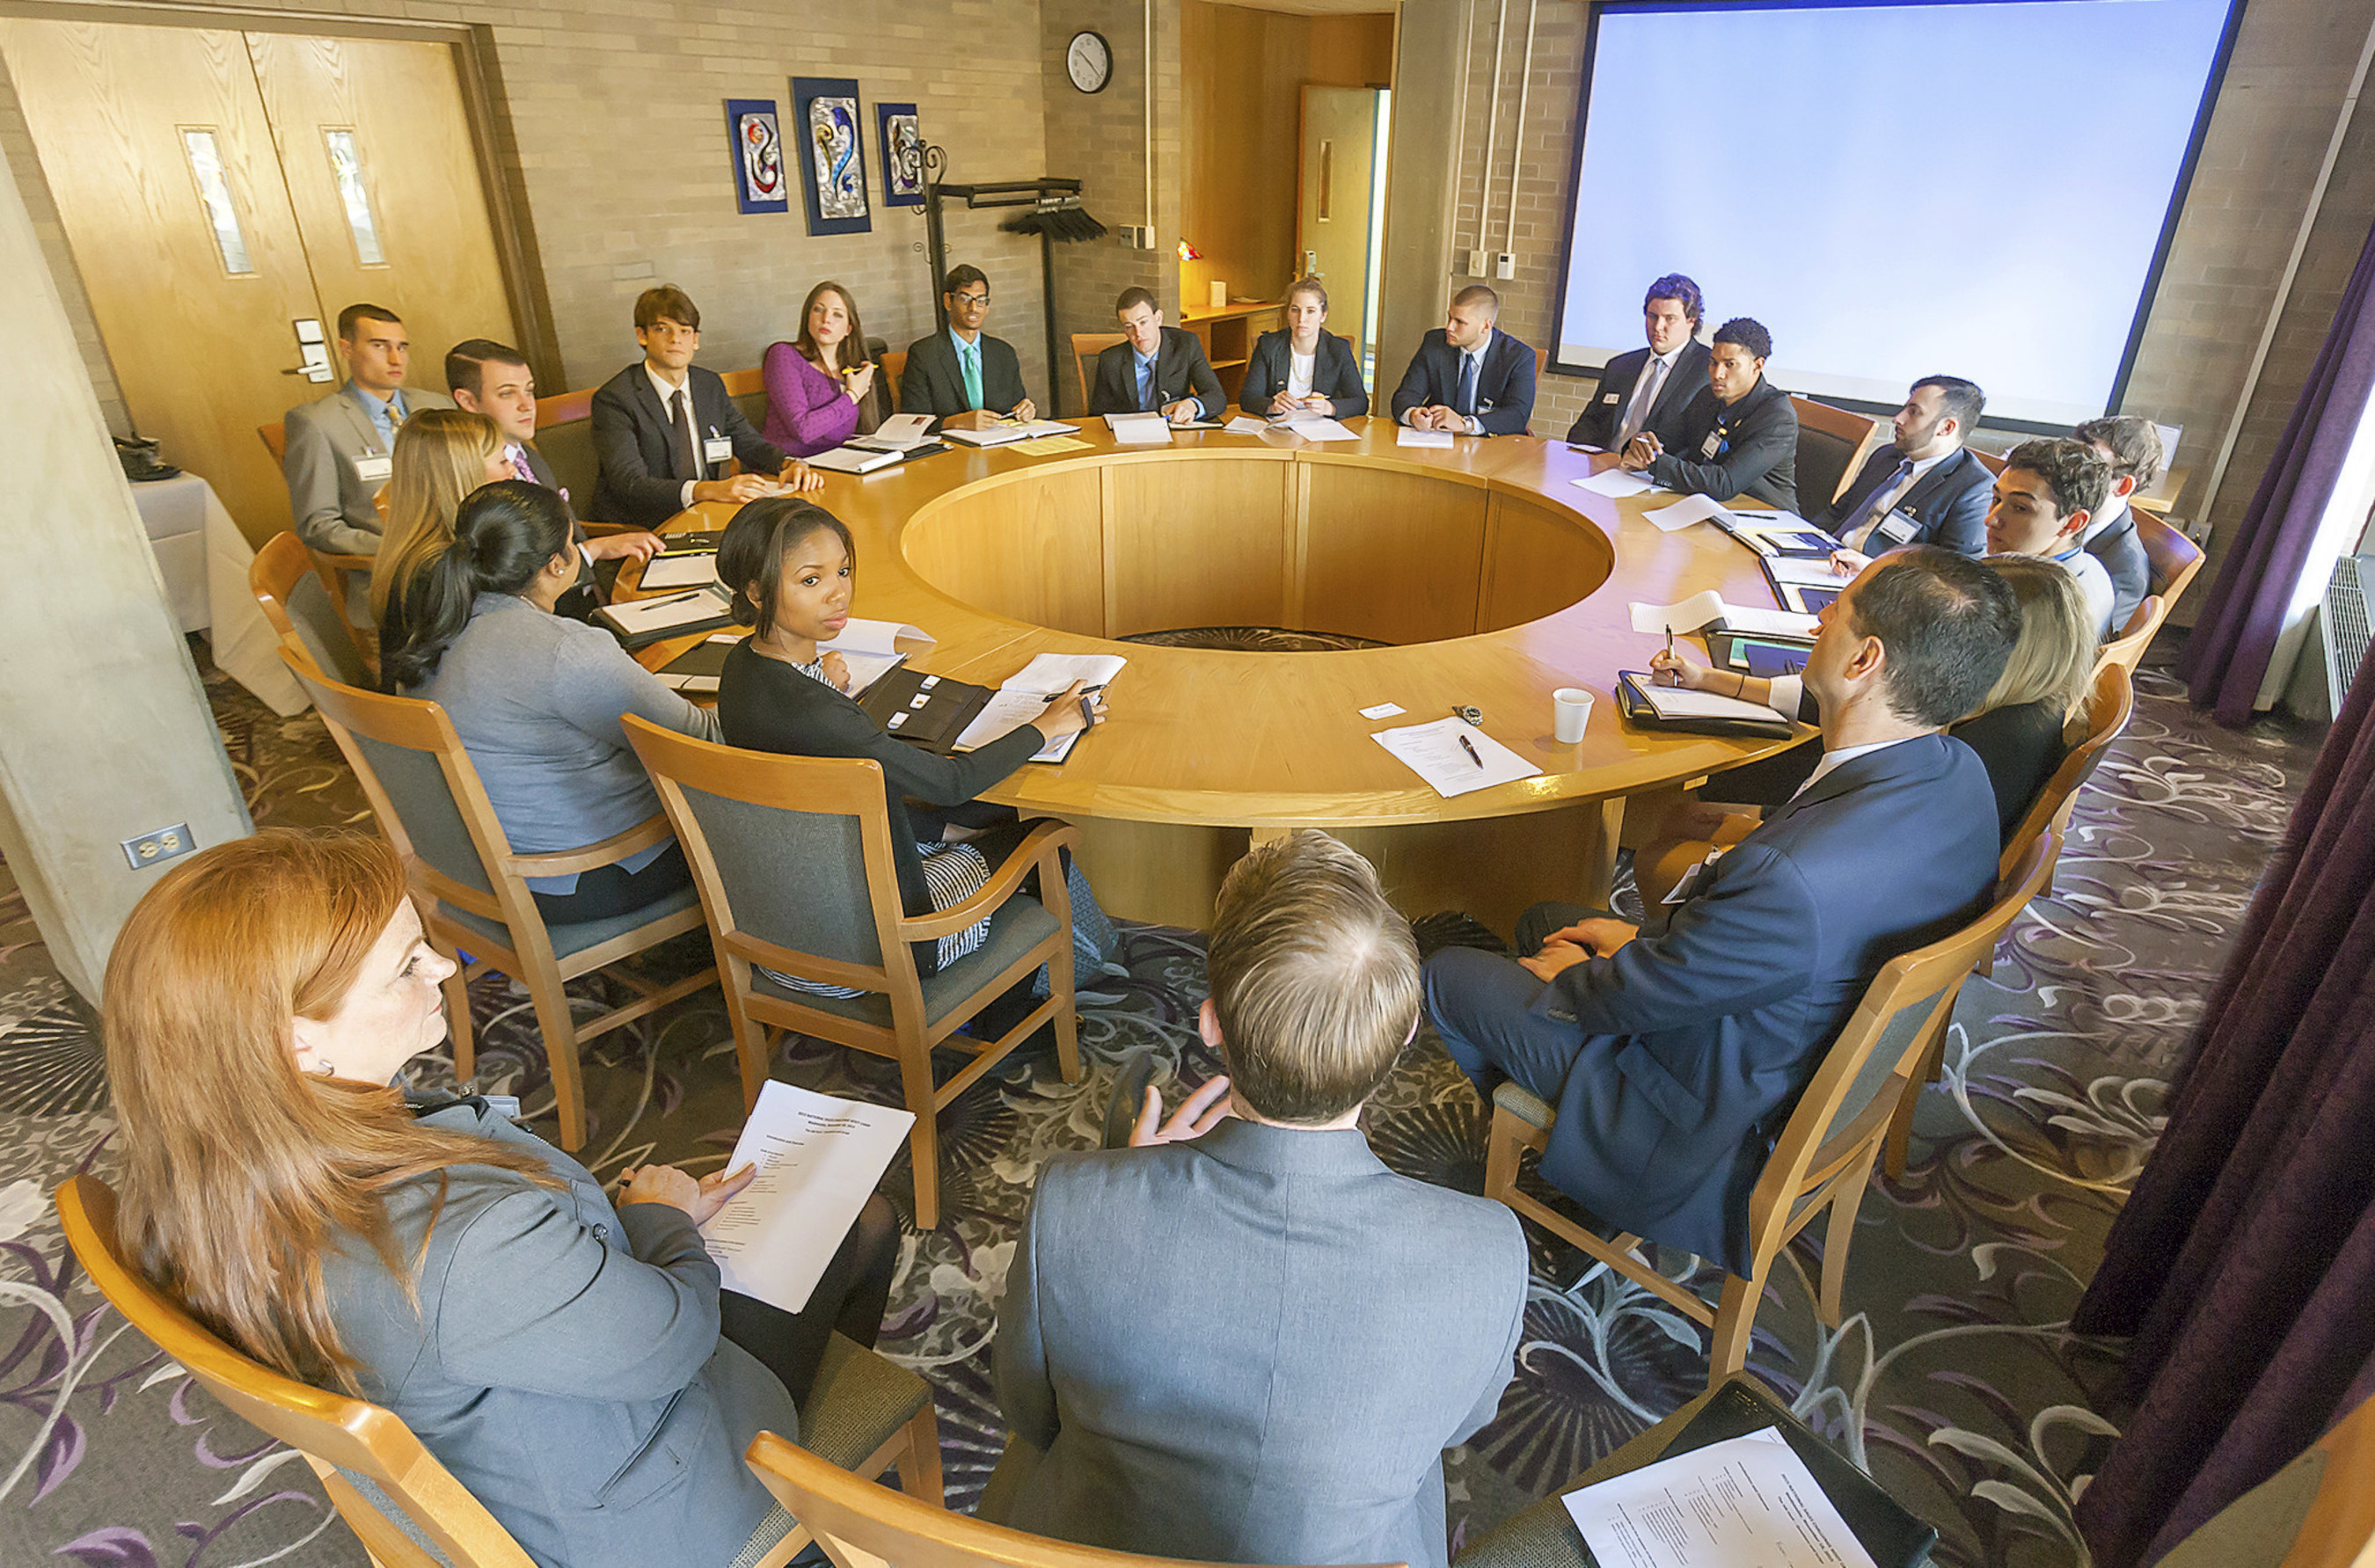 William Paterson University's Cotsakos College of Business provides sales students from across the country the opportunity to directly interact with industry leaders during the National Sales Challenge at the University's Russ Berrie Institute for Professional Sales in Wayne, N.J.